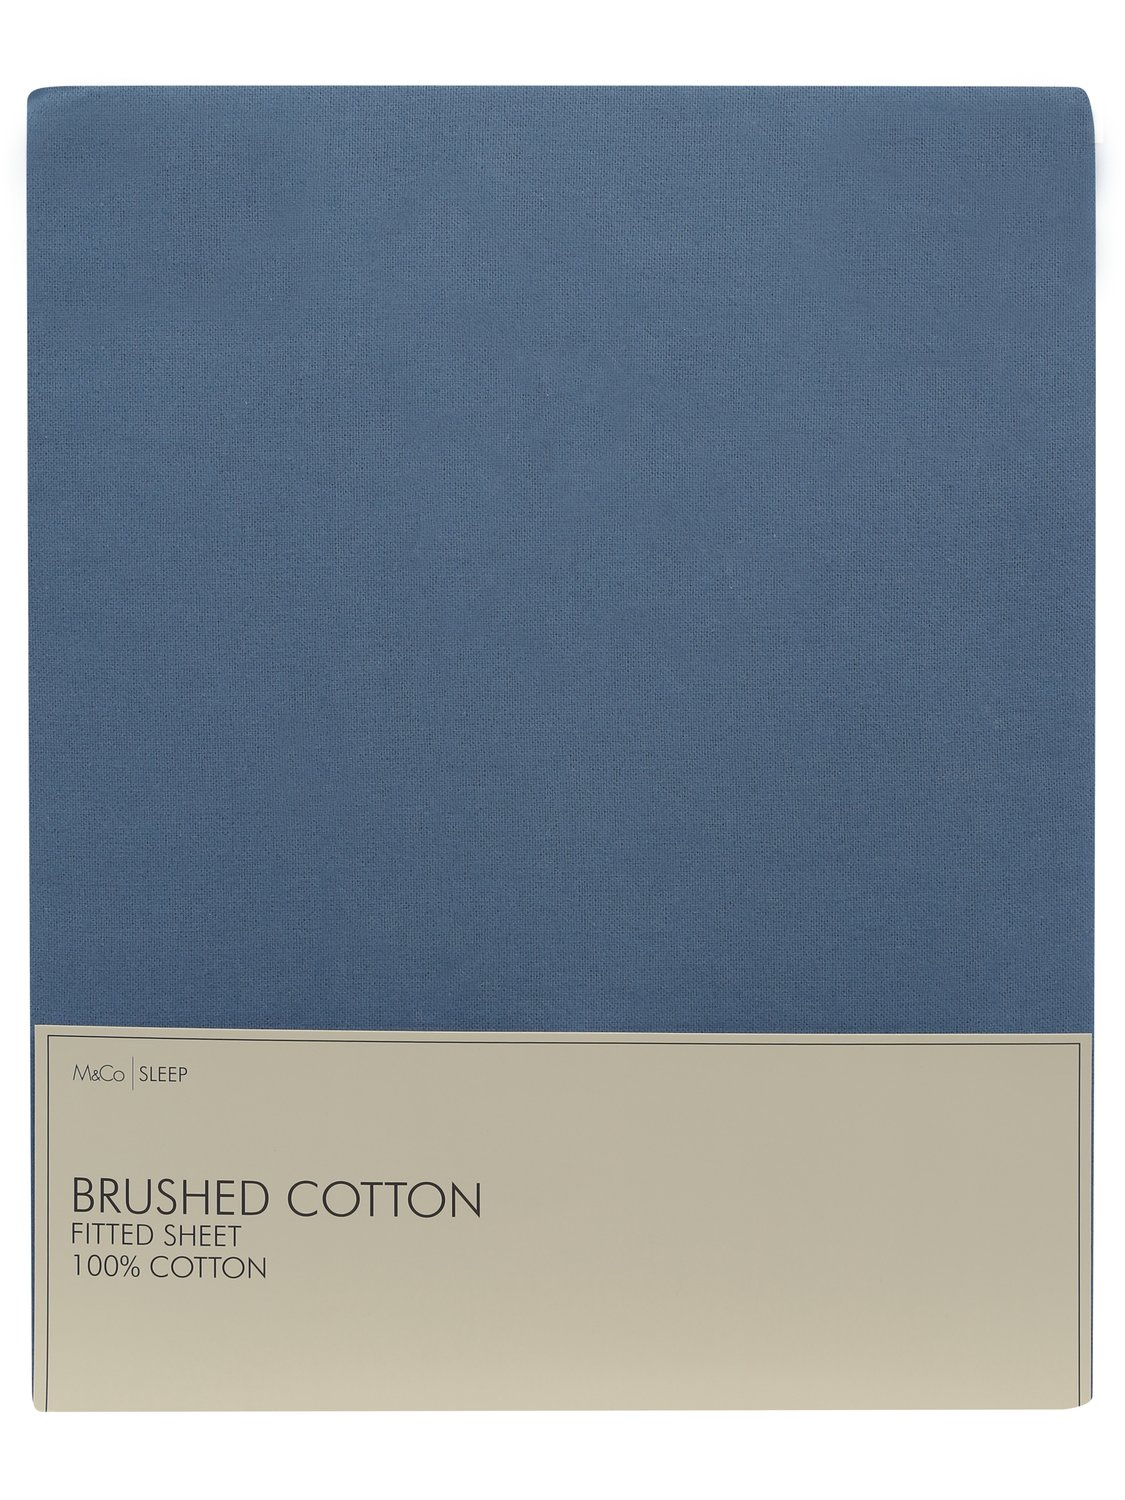 home brushed cotton fitted sheet 100% cotton single to super king size  - denim